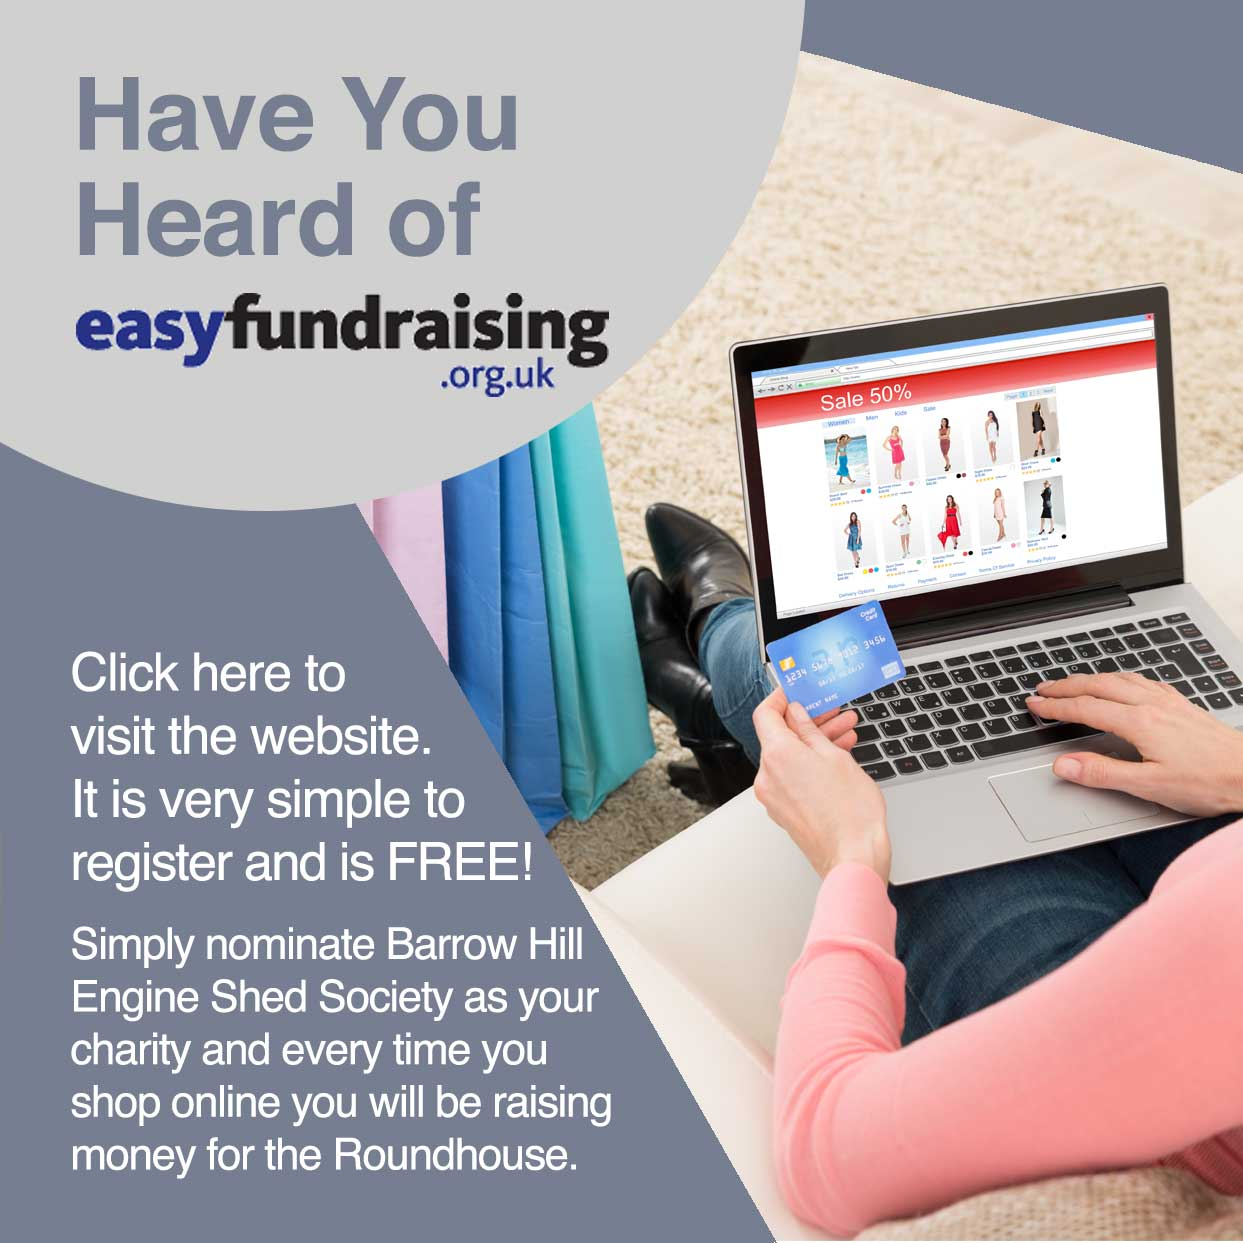 Click here to sign up to Easy Fundraising - it is FREE